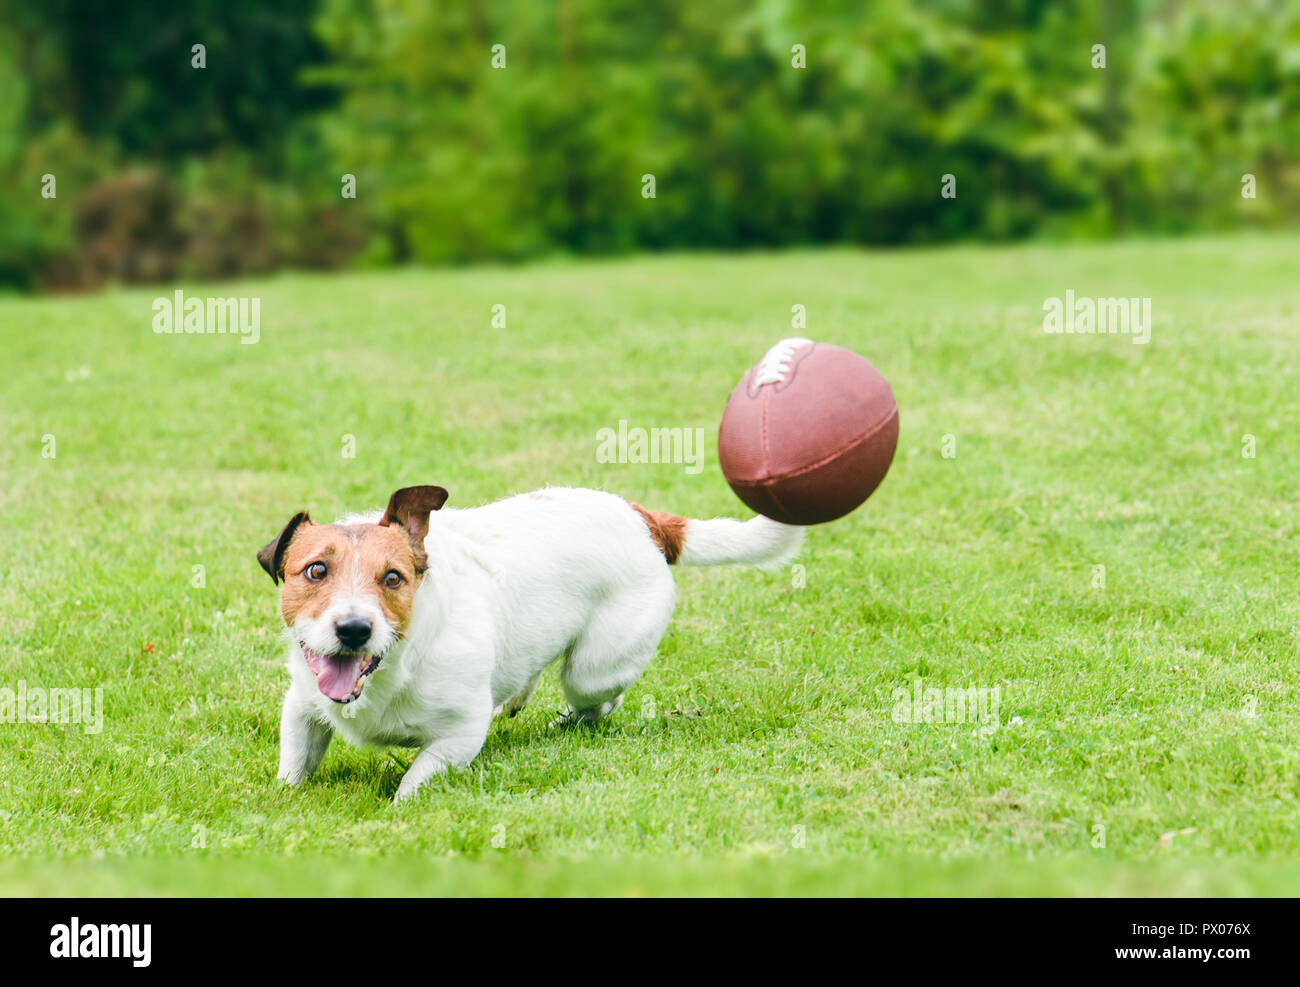 Amusing dog running to catch american football ball at back yard green grass lawn - Stock Image